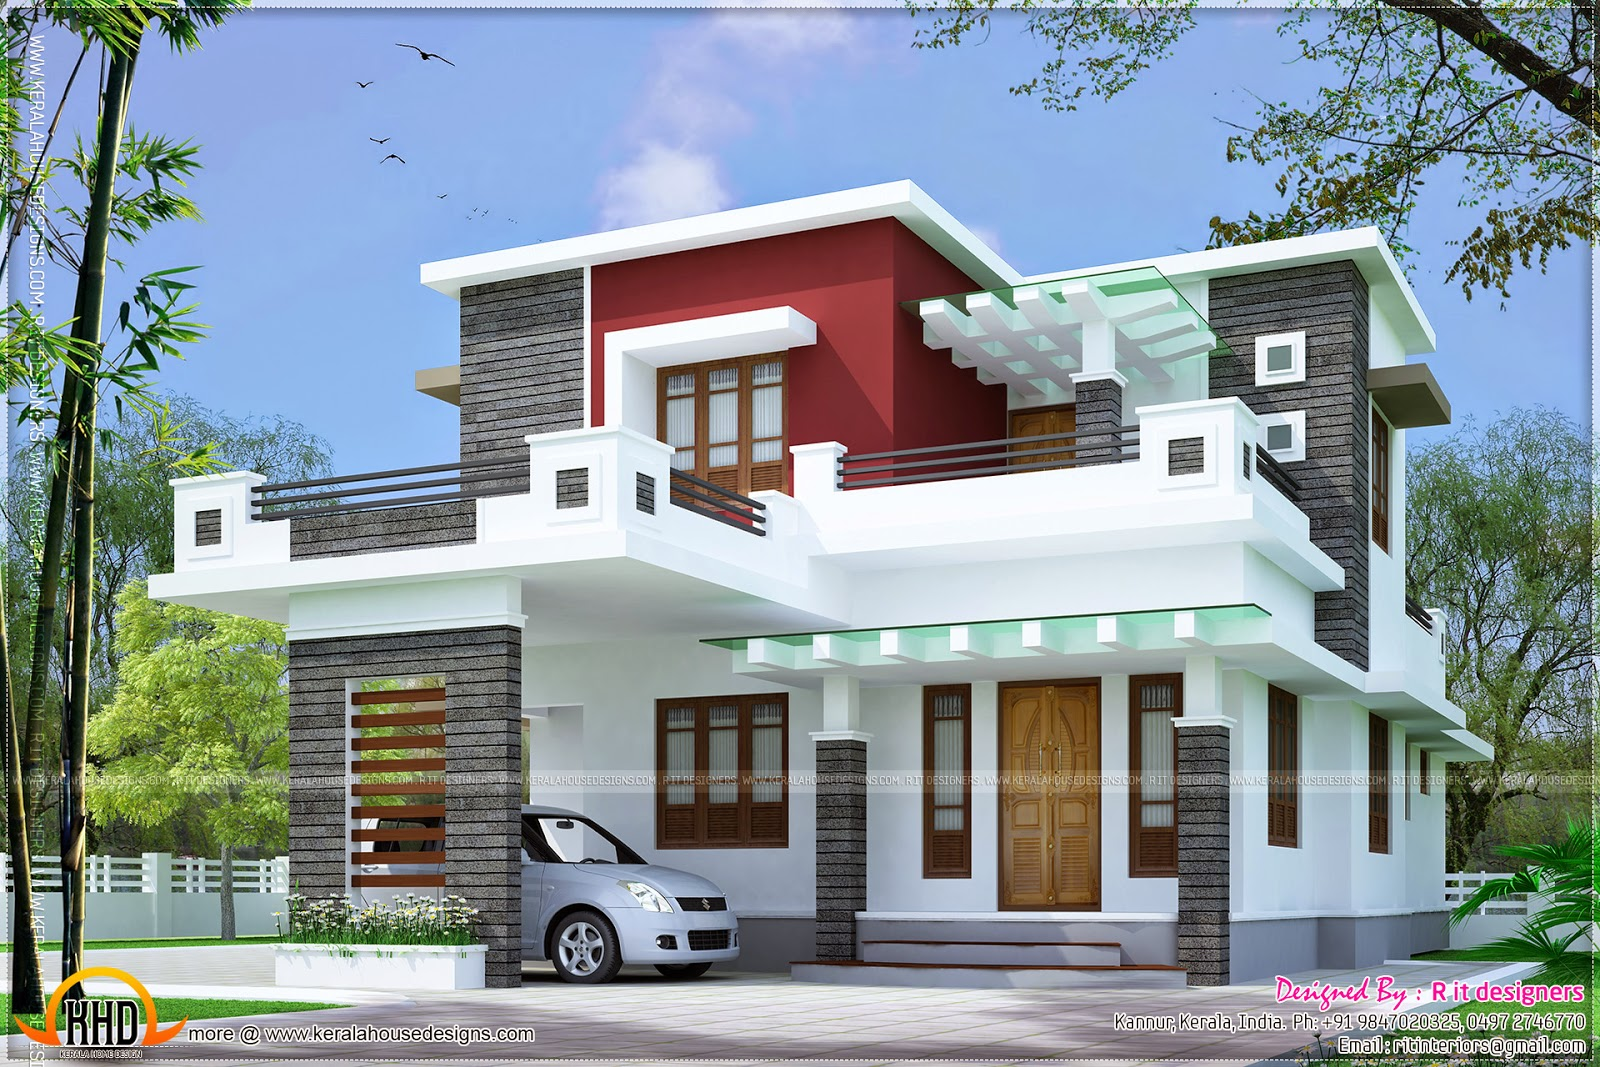 1959 Square Feet Contemporary House on Modern Modular Home Floor Plans